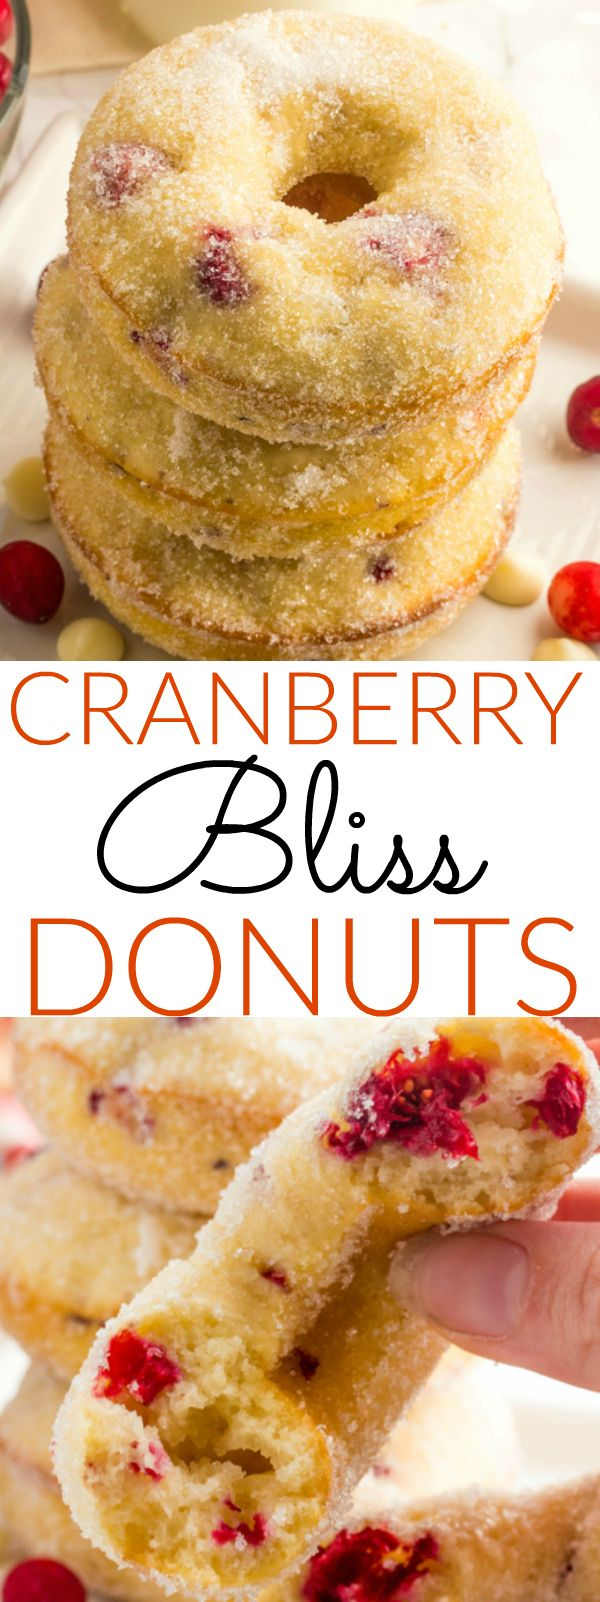 Wake up this Holiday season with these delicious Cranberry Bliss Donuts. Fresh cranberries and white chocolate are combined into the batter and baked until golden and tossed in sugar.